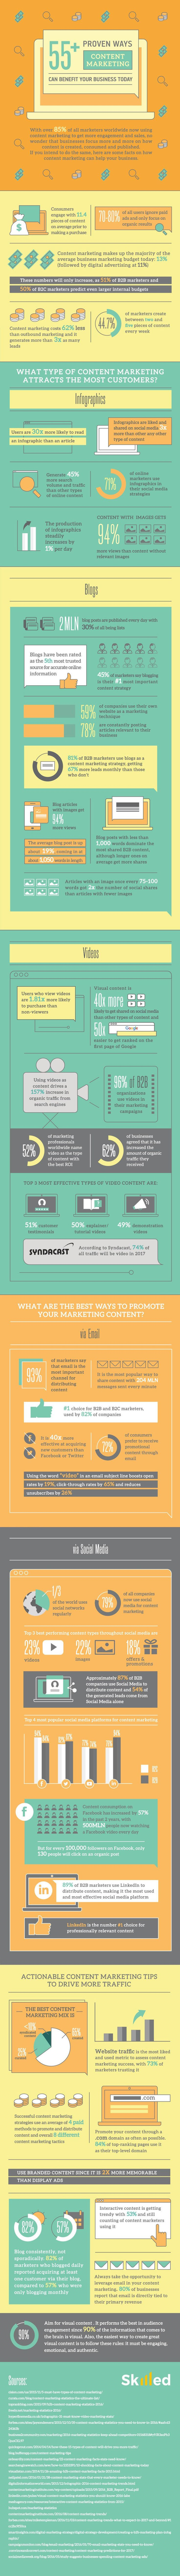 Content marketing is one of the most cost-effective marketing methods available. Here are the most important facts about small business content marketing.